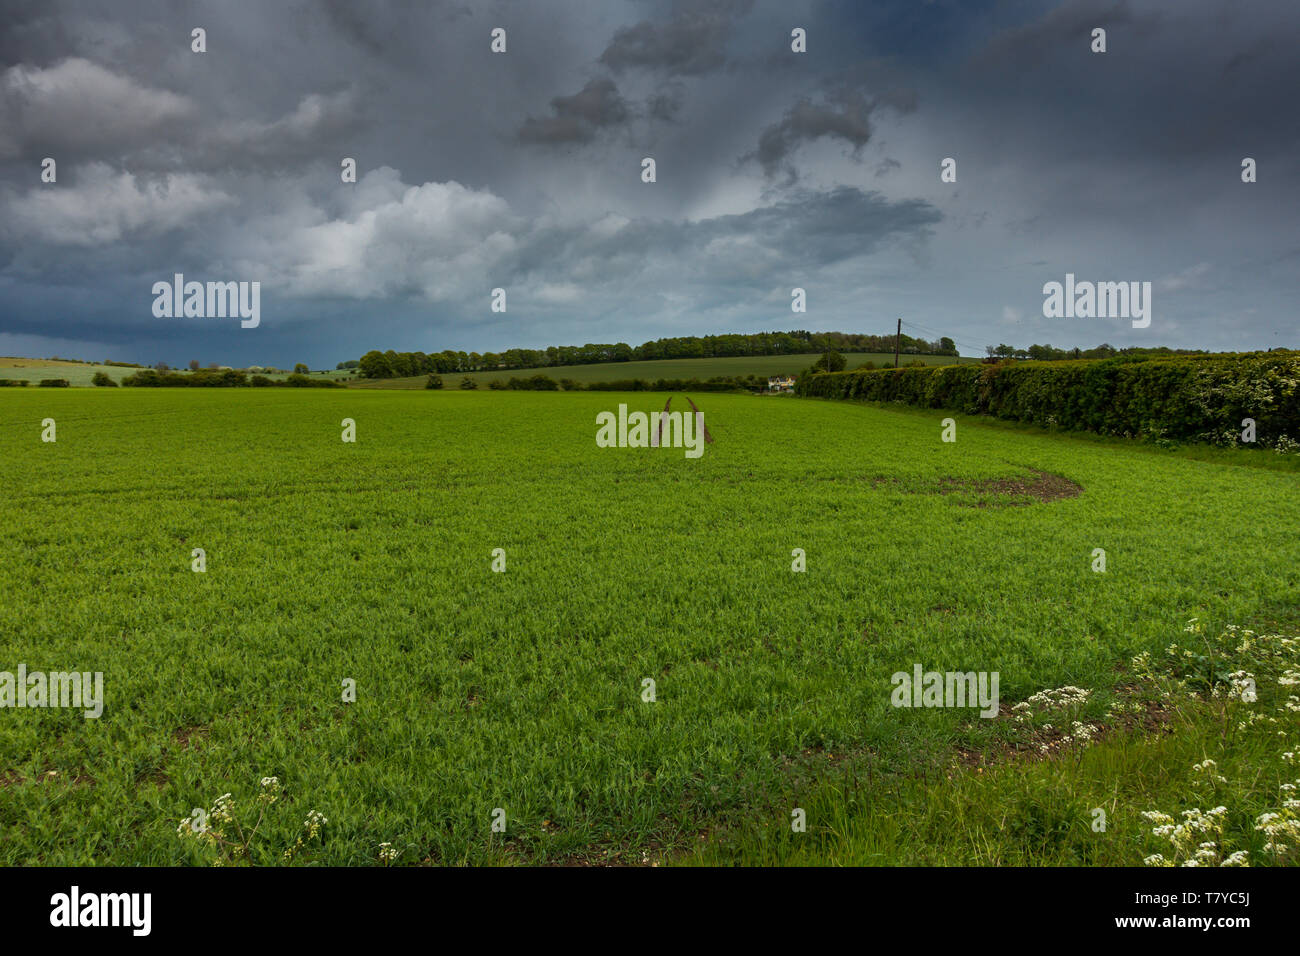 Heavy weather over the Hertfordshire countryside near Ashwell in the UK. Heavy grey skies and green arable land. Stock Photo